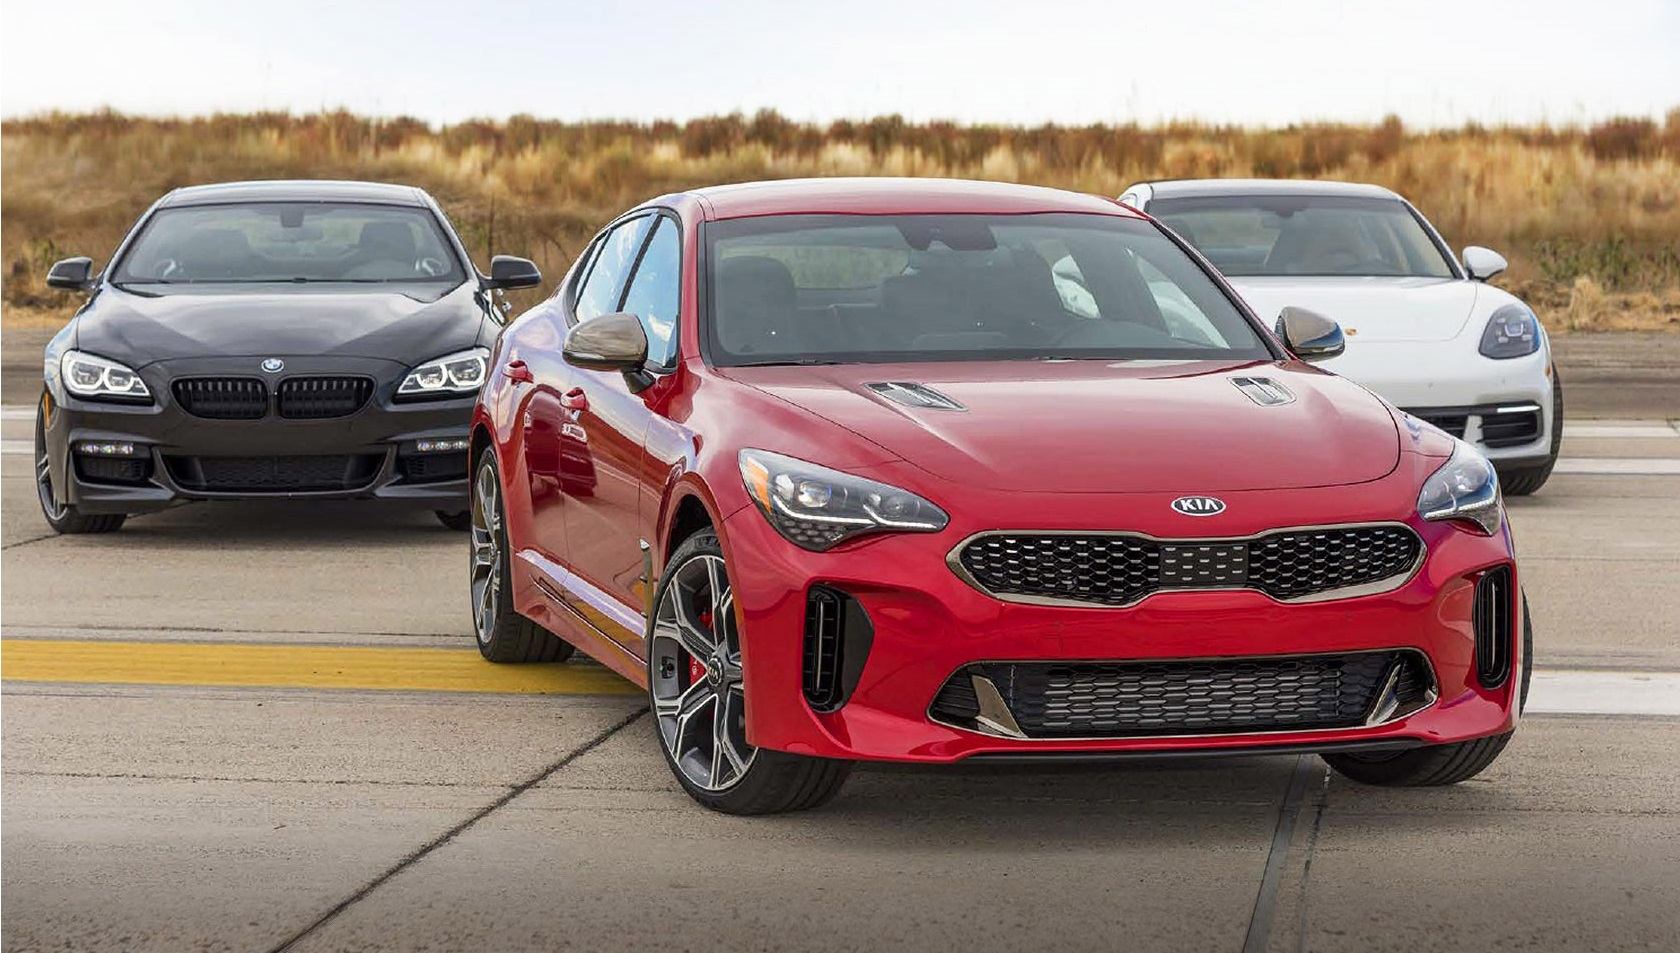 Fast and Expensive Cars that Can't Match the 2018 Kia Stinger